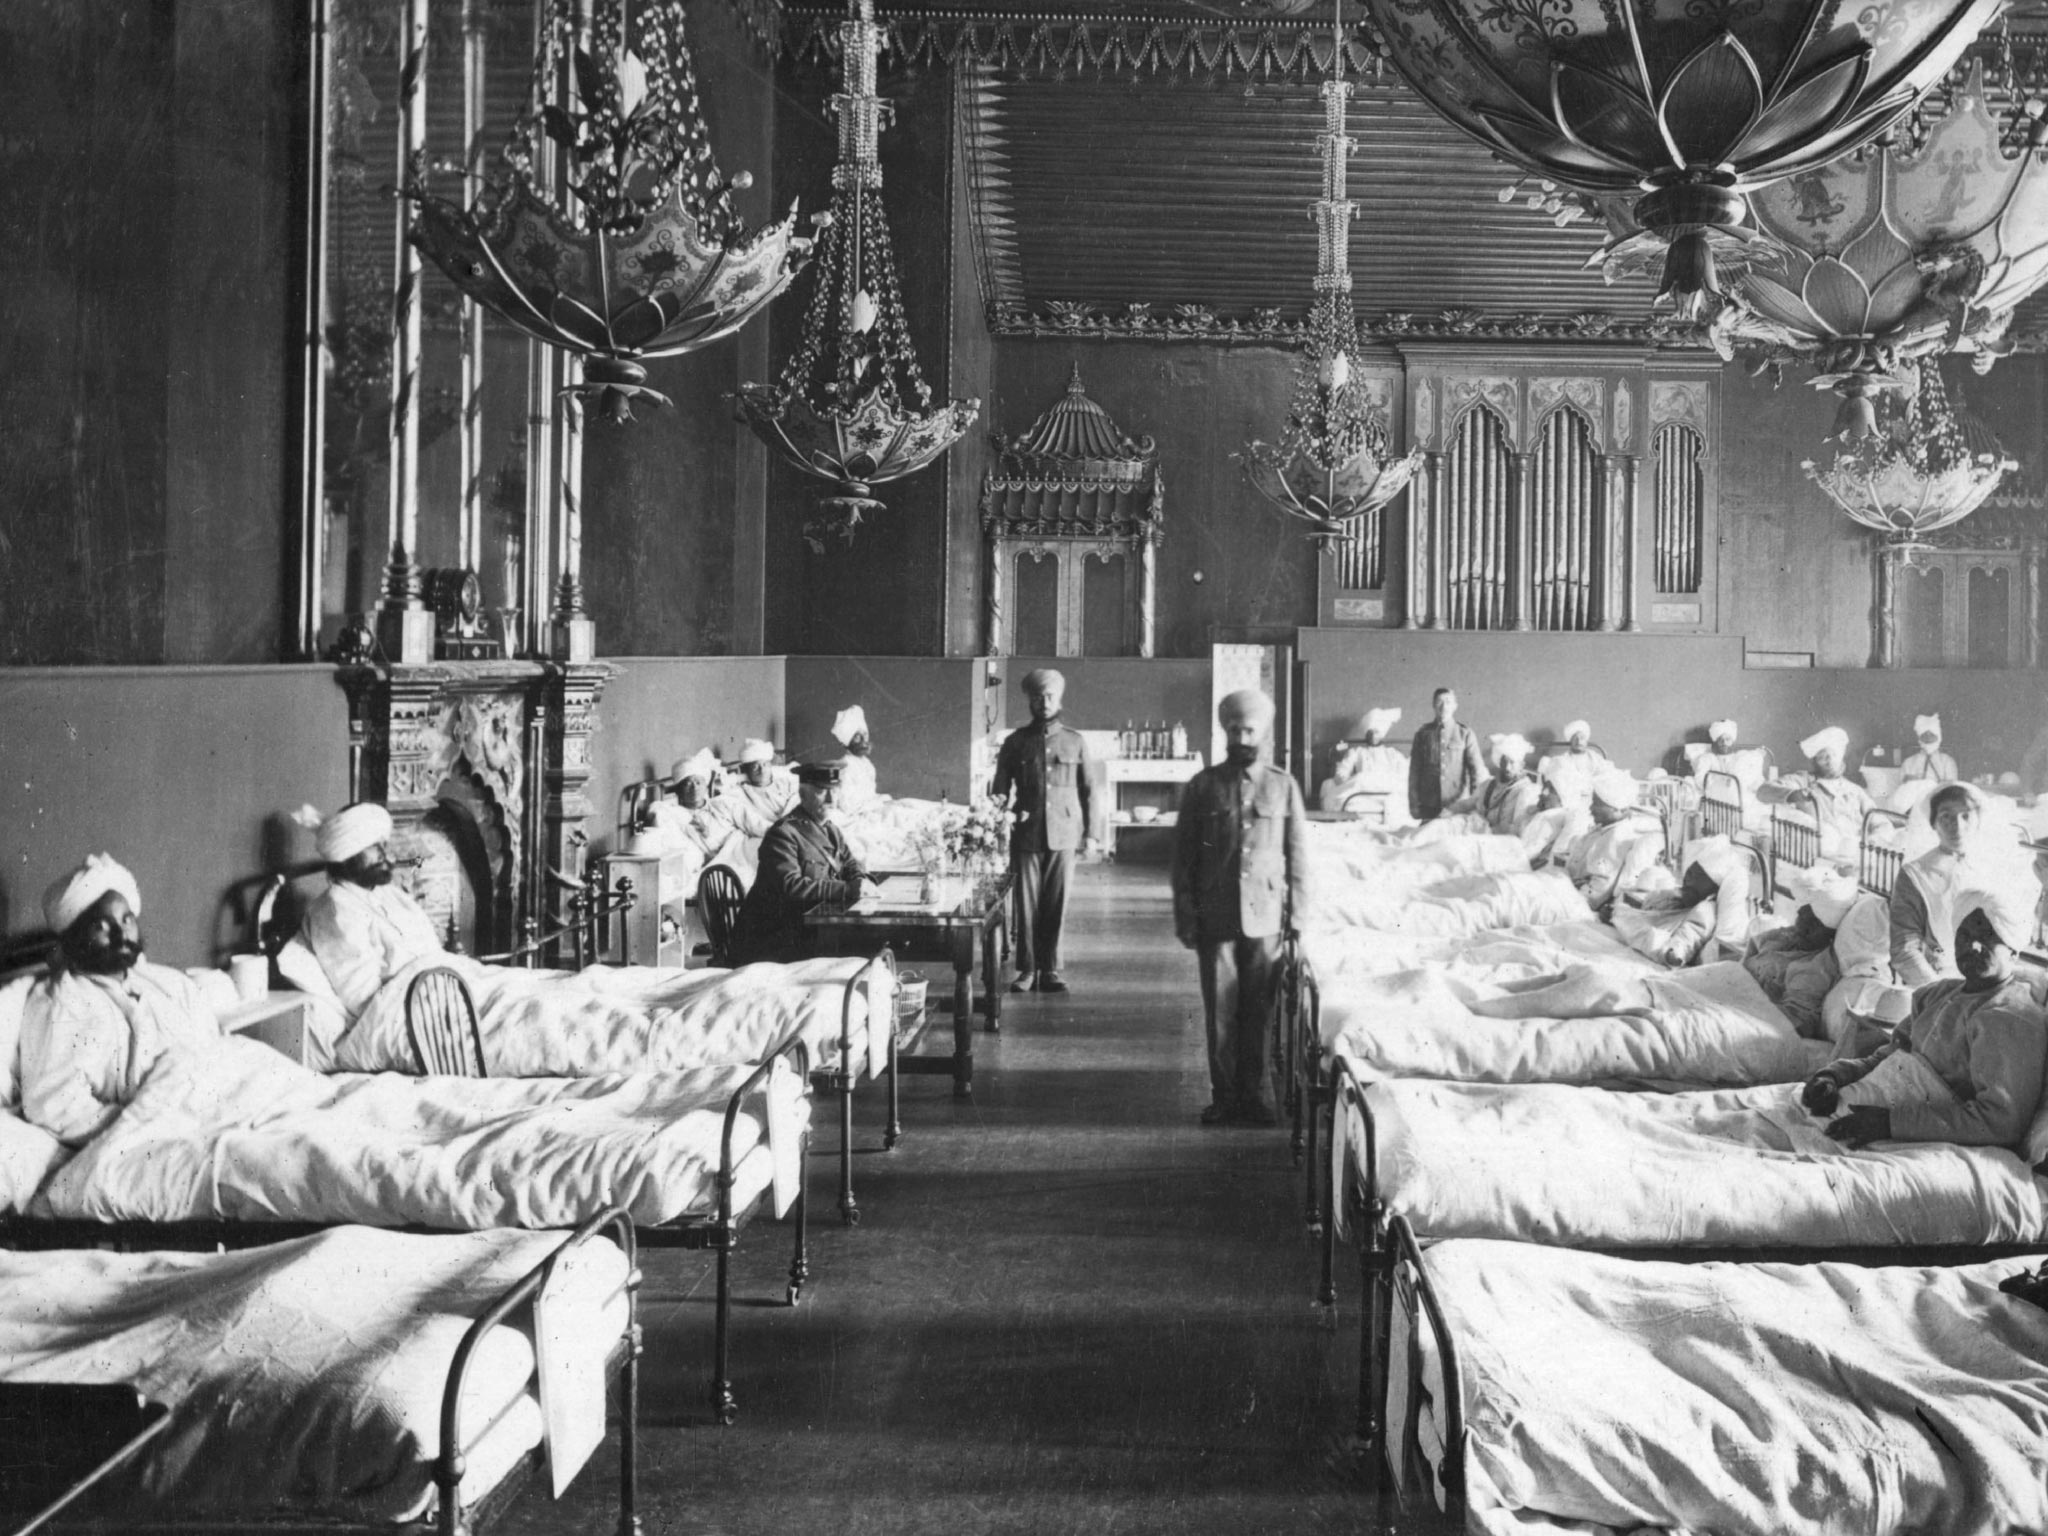 world war 1 hospital